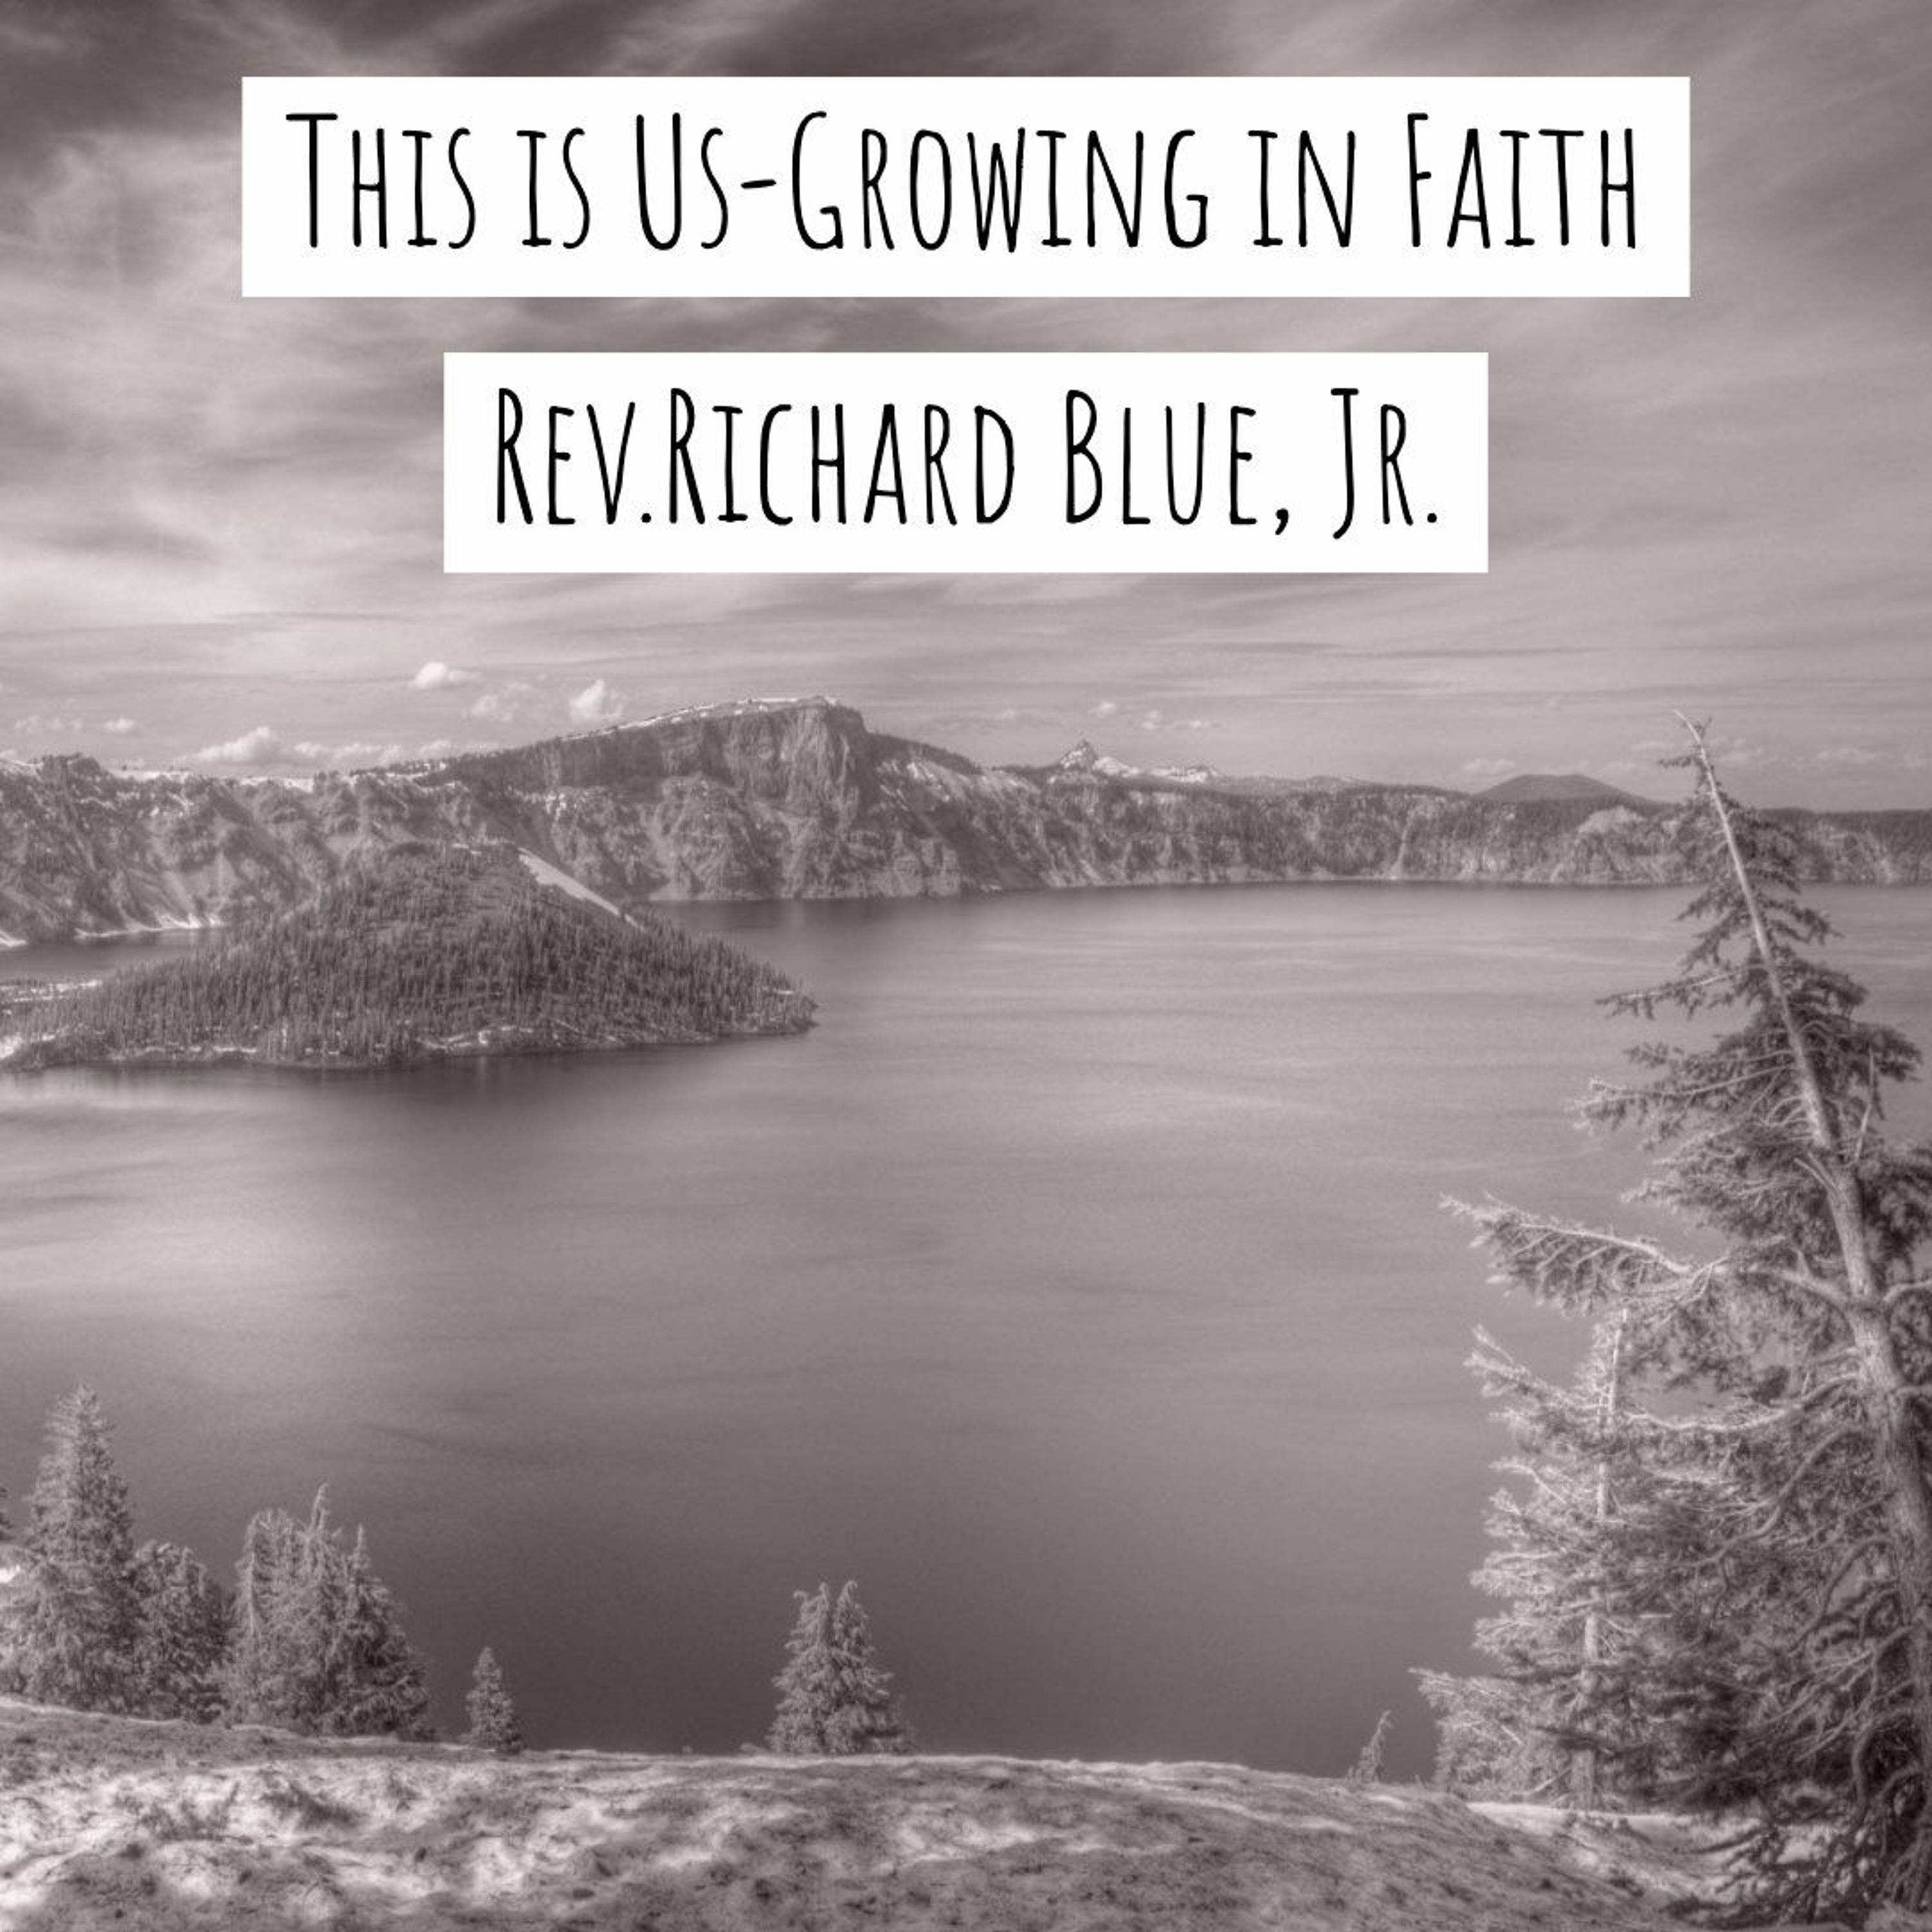 This is Us-Growing in Faith